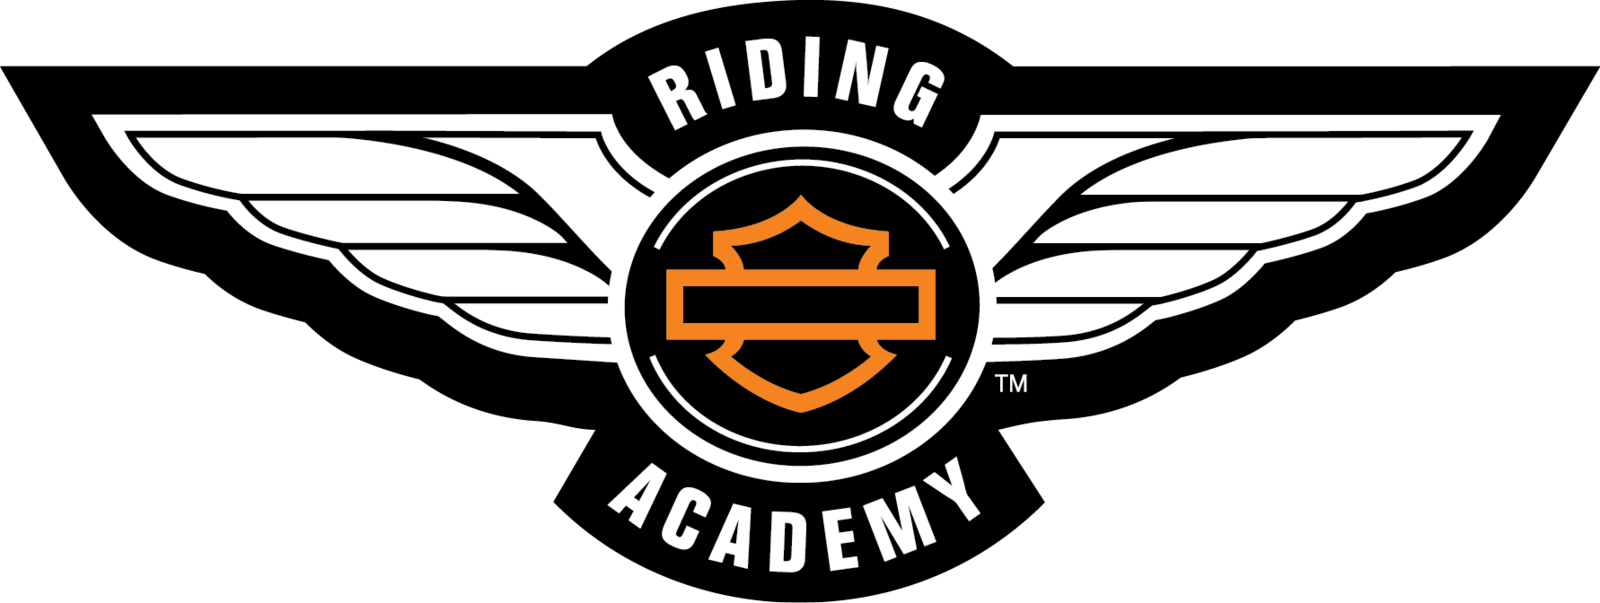 Harley Davidson Logo Riding Academy Png PNG Image